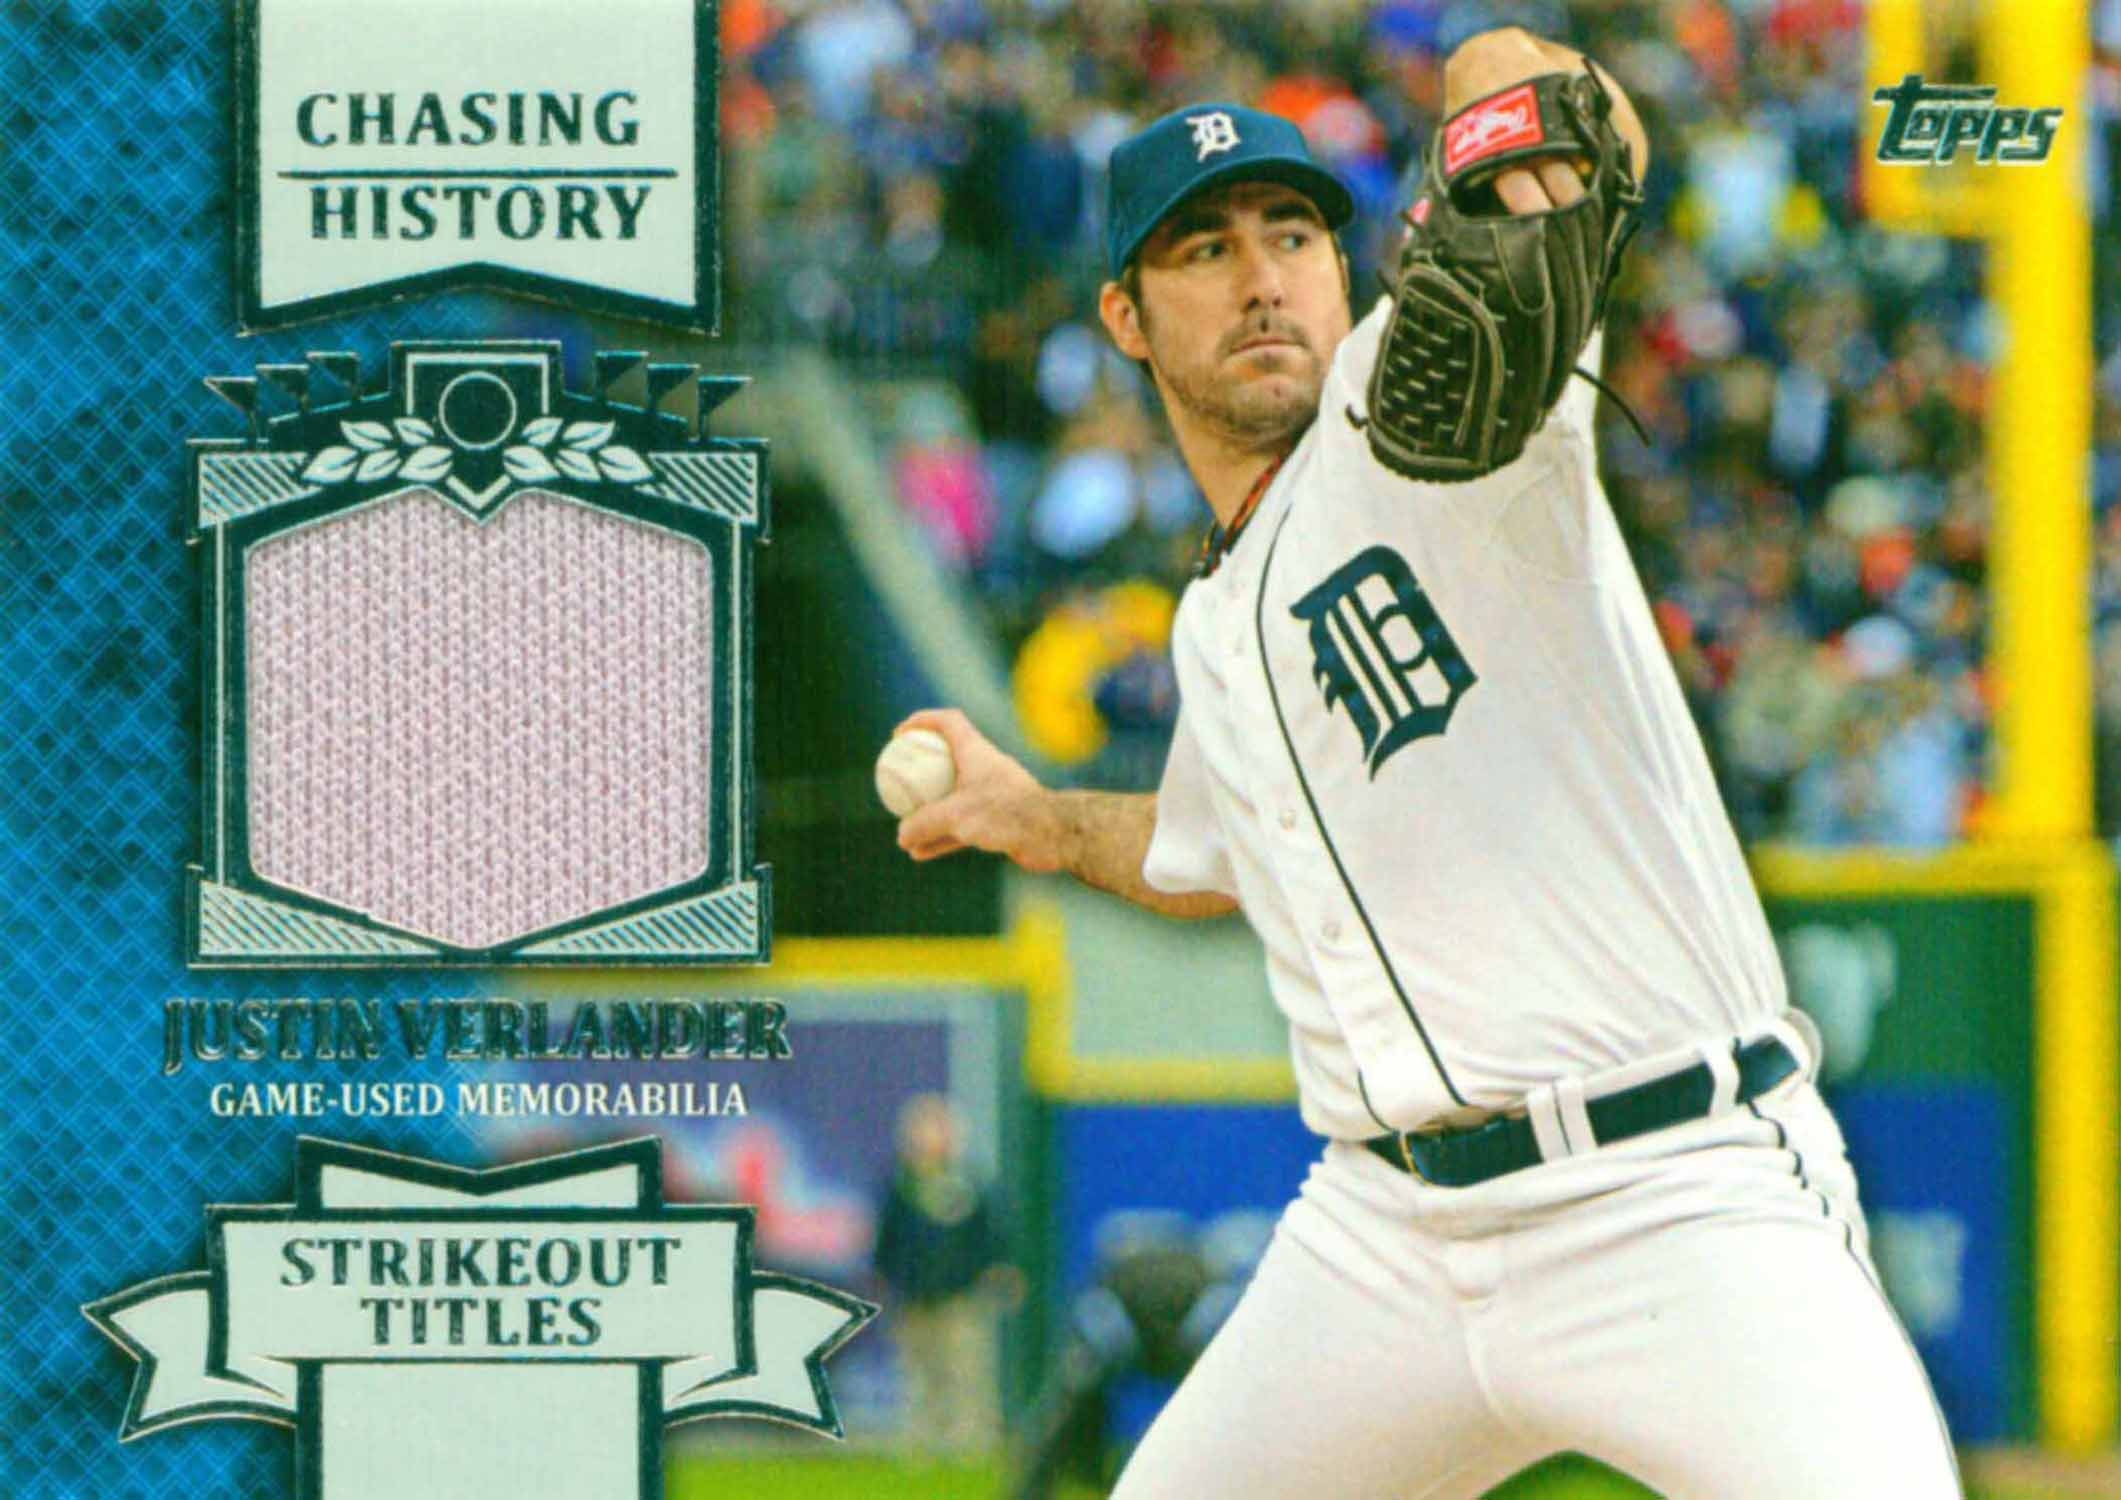 2013 Topps Chasing History Relics